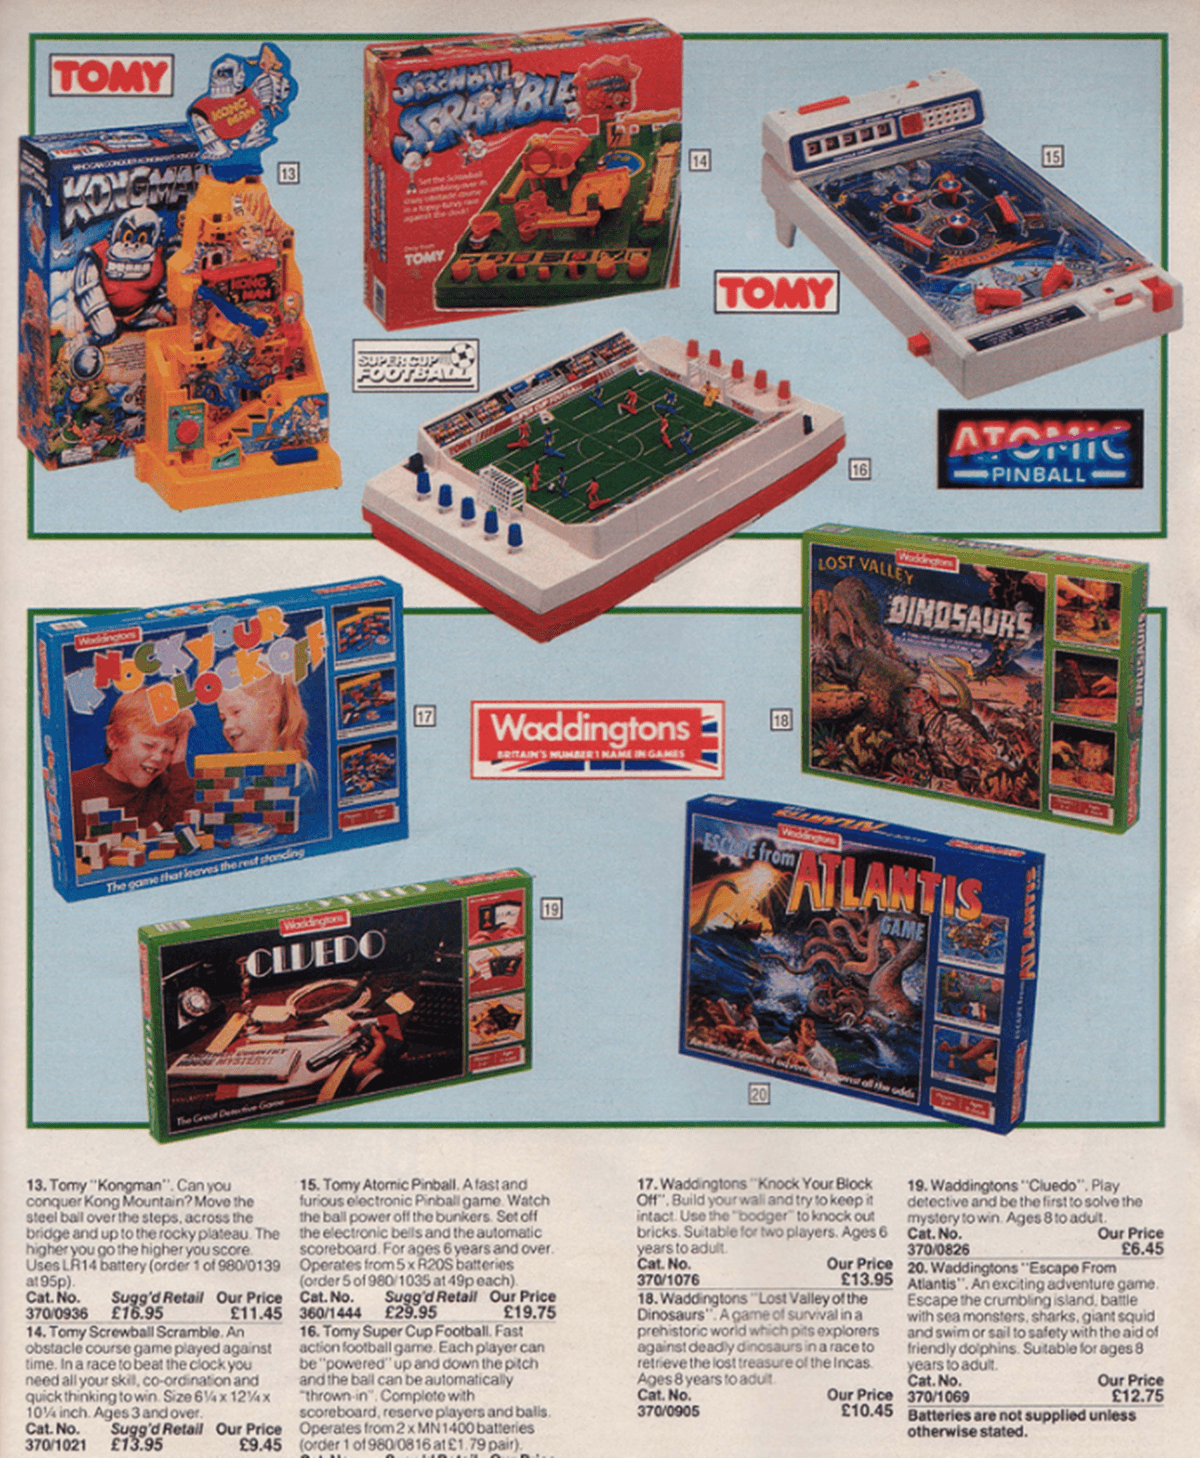 6 Take A Look Inside An Argos Catalogue From 1986!